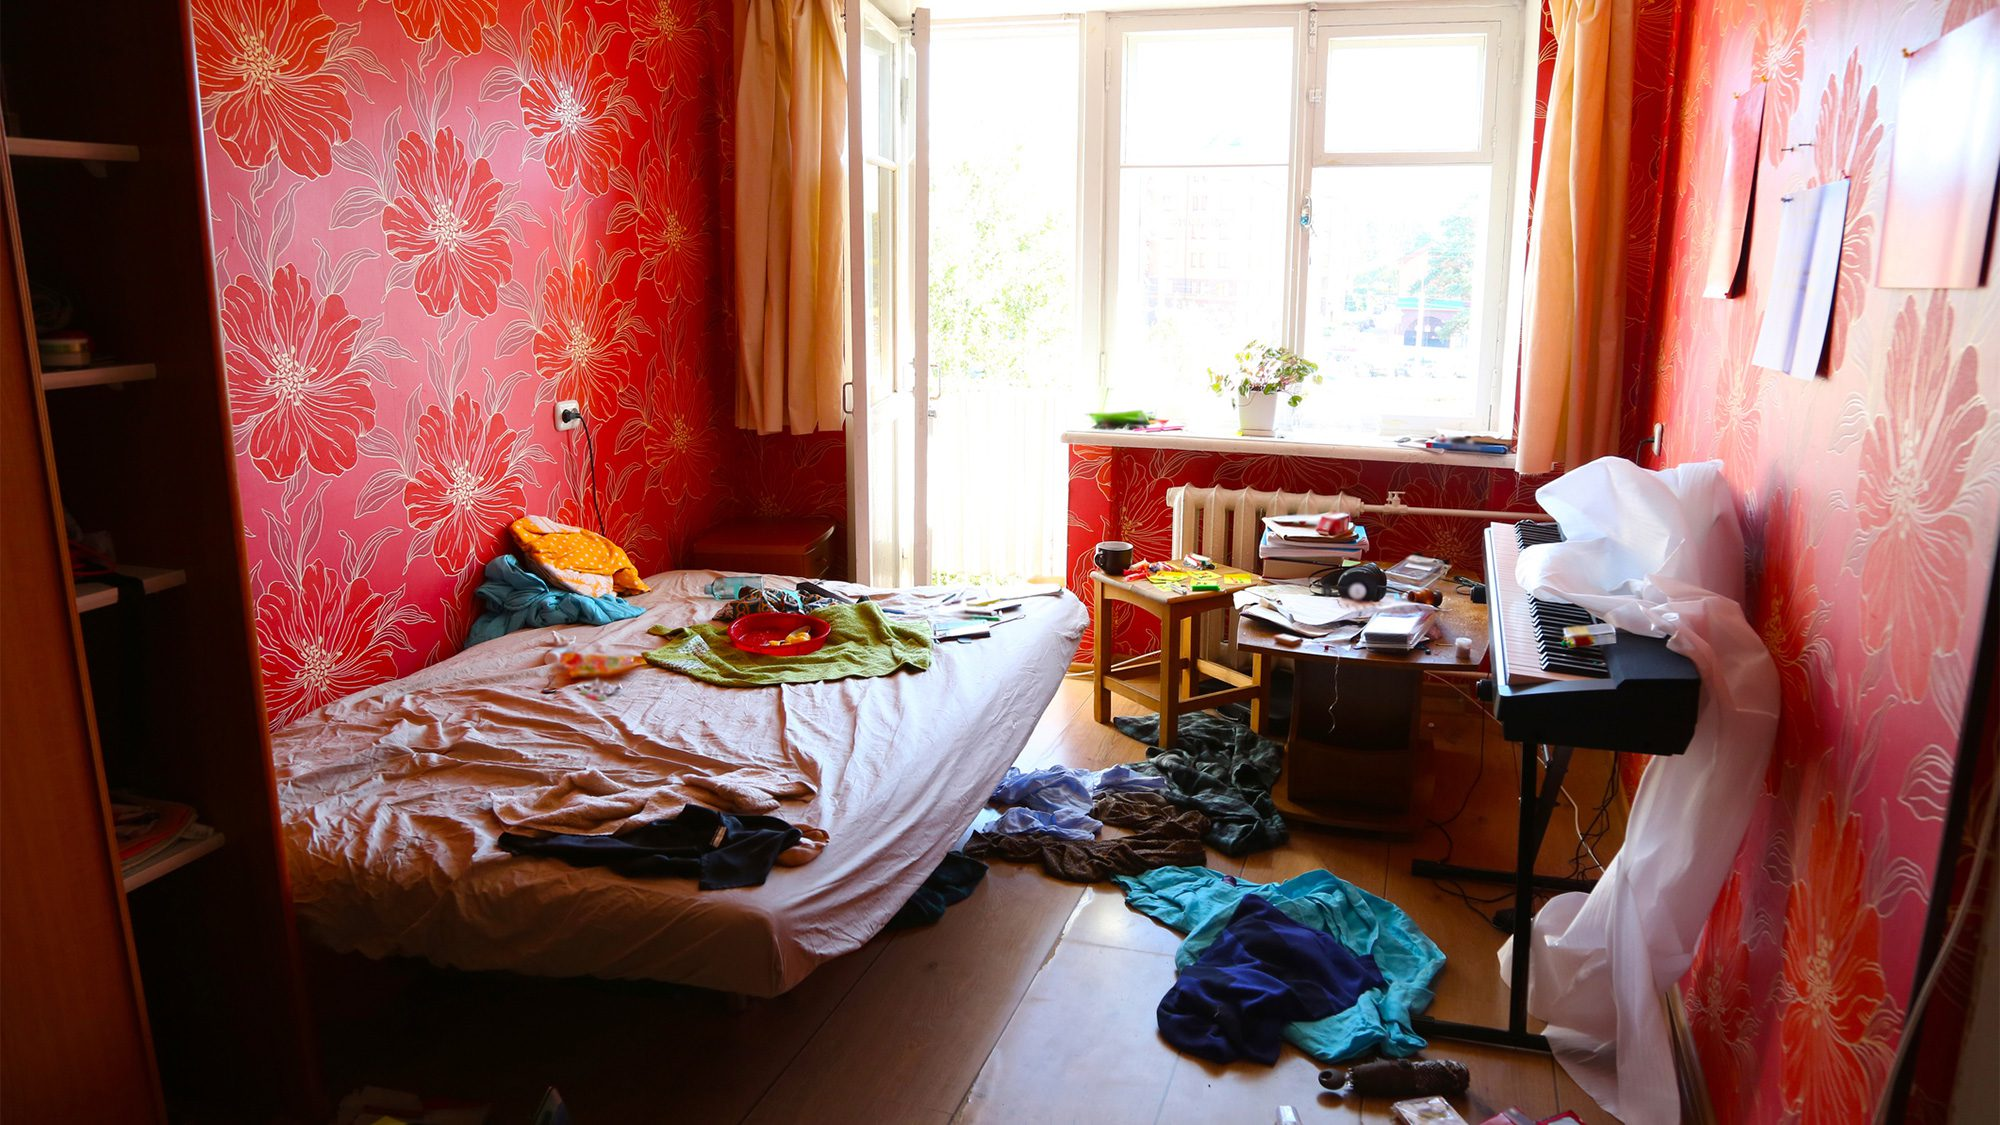 7 things in your bedroom that are stressing you out realtor com